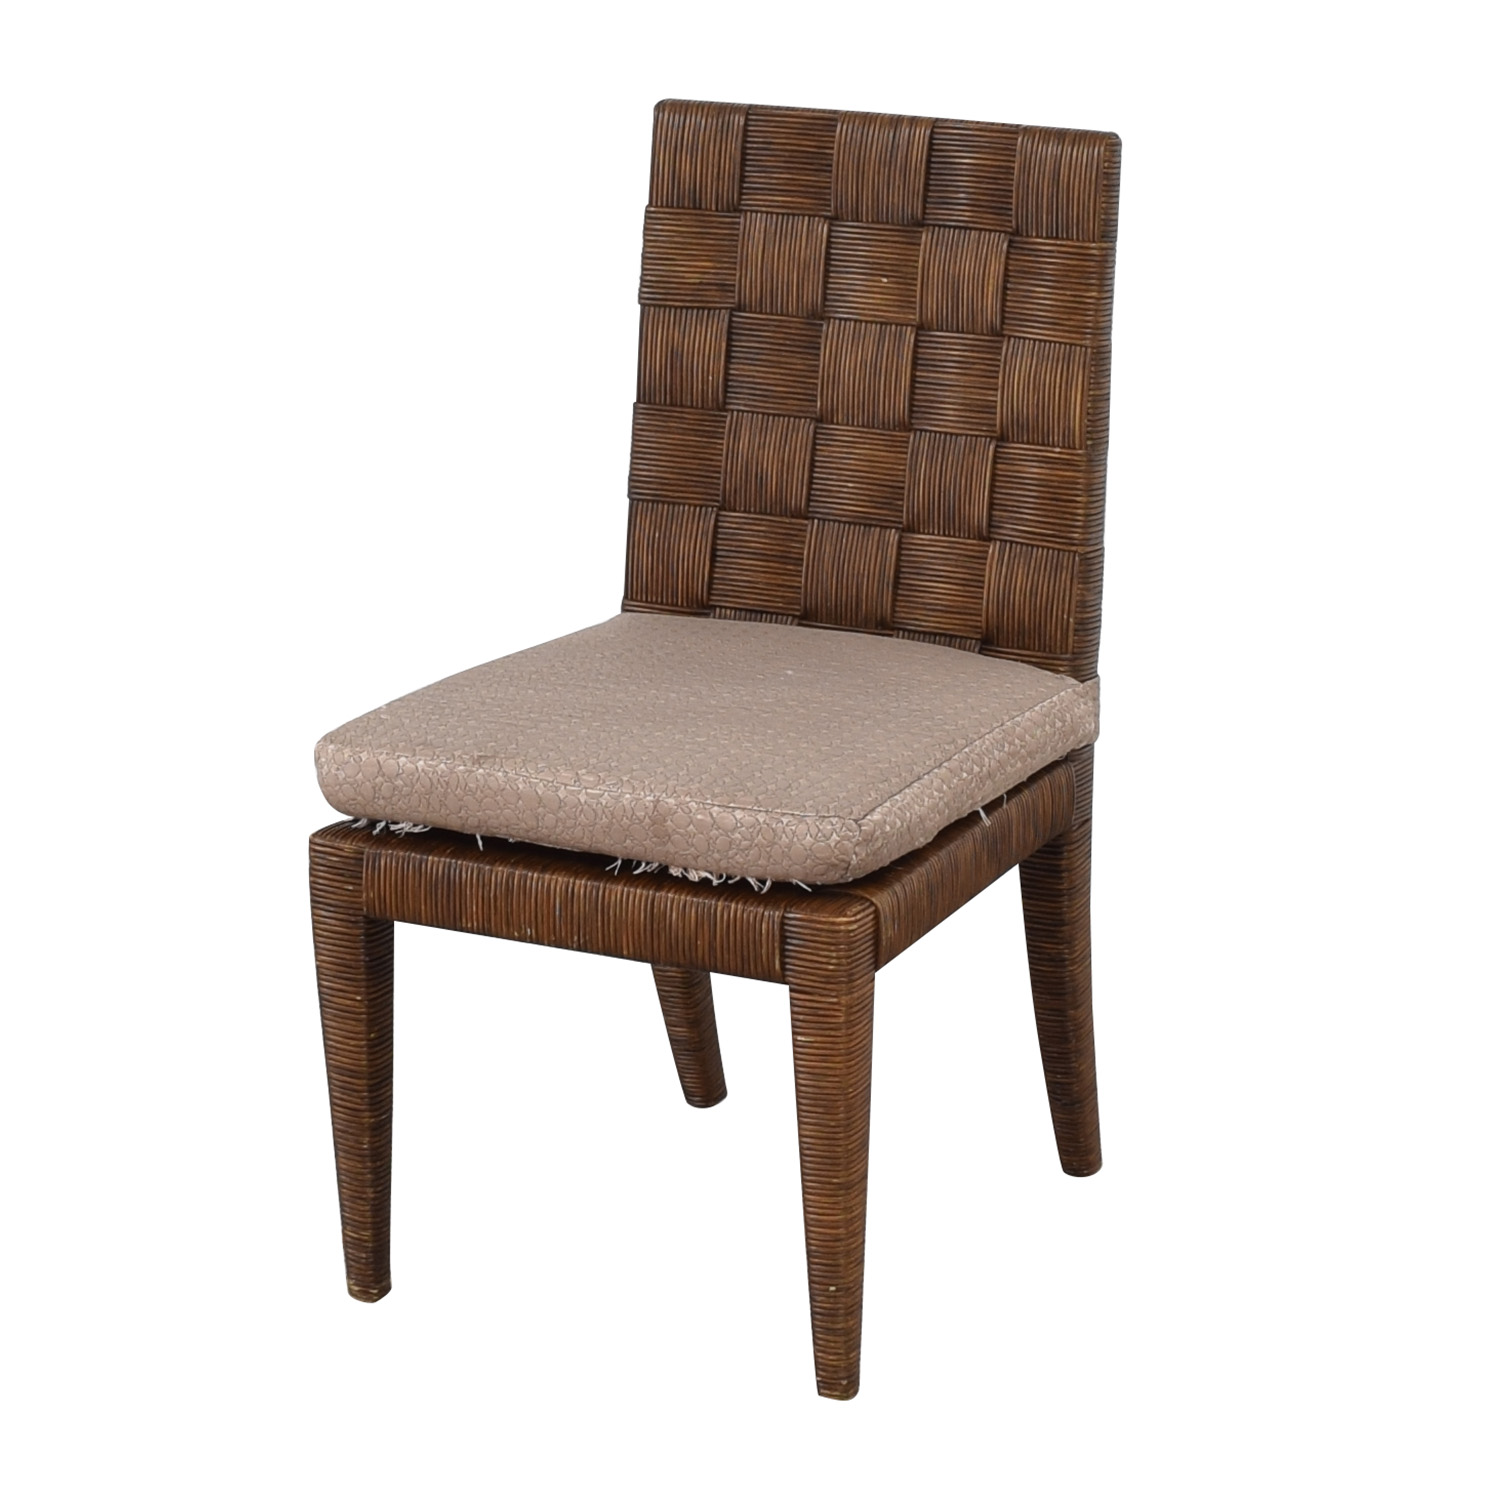 Donghia Donghia John Hutton Block Island Side Dining Chairs dimensions